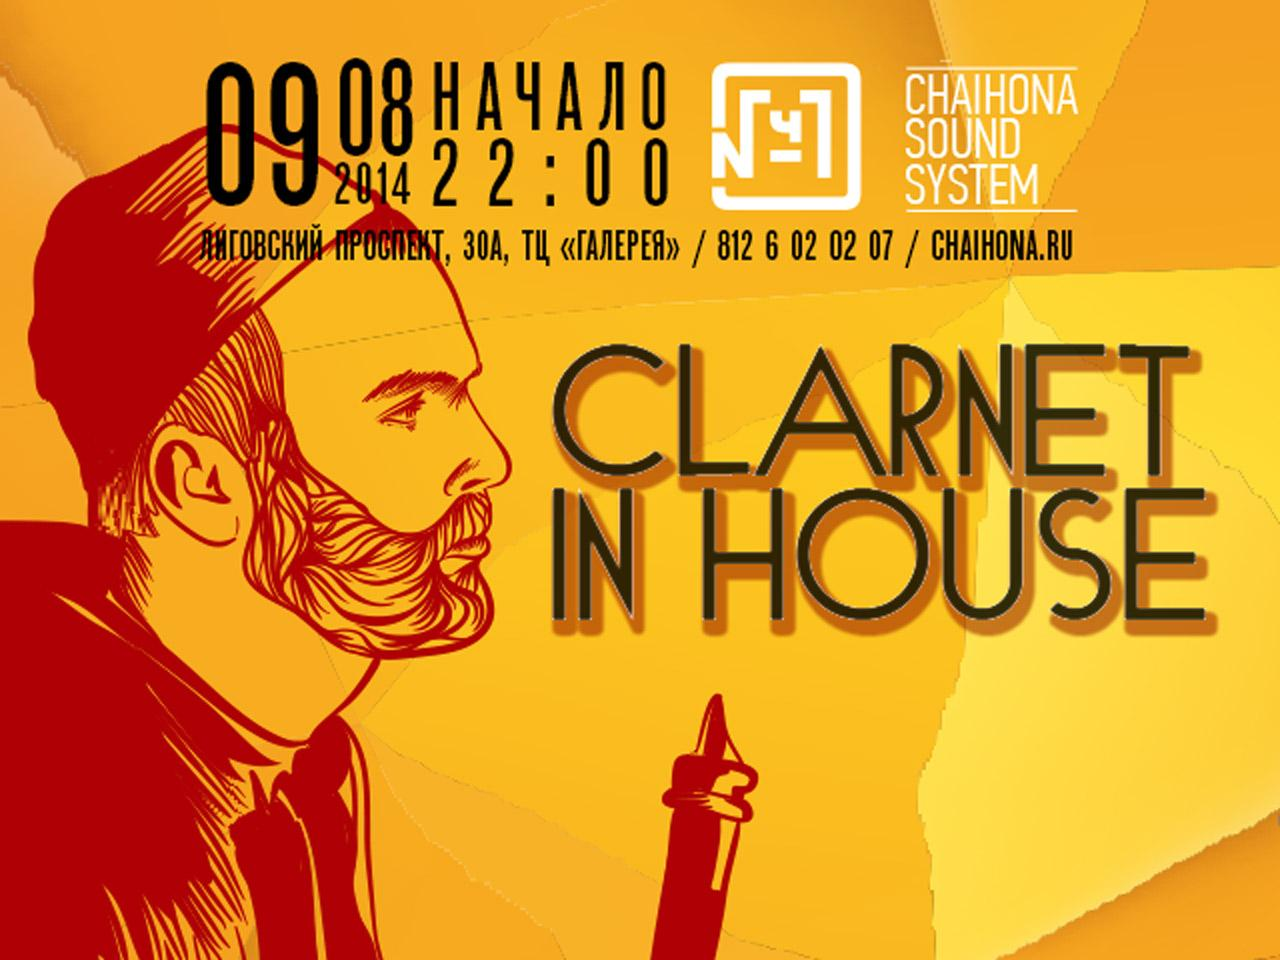 Clarnet in House